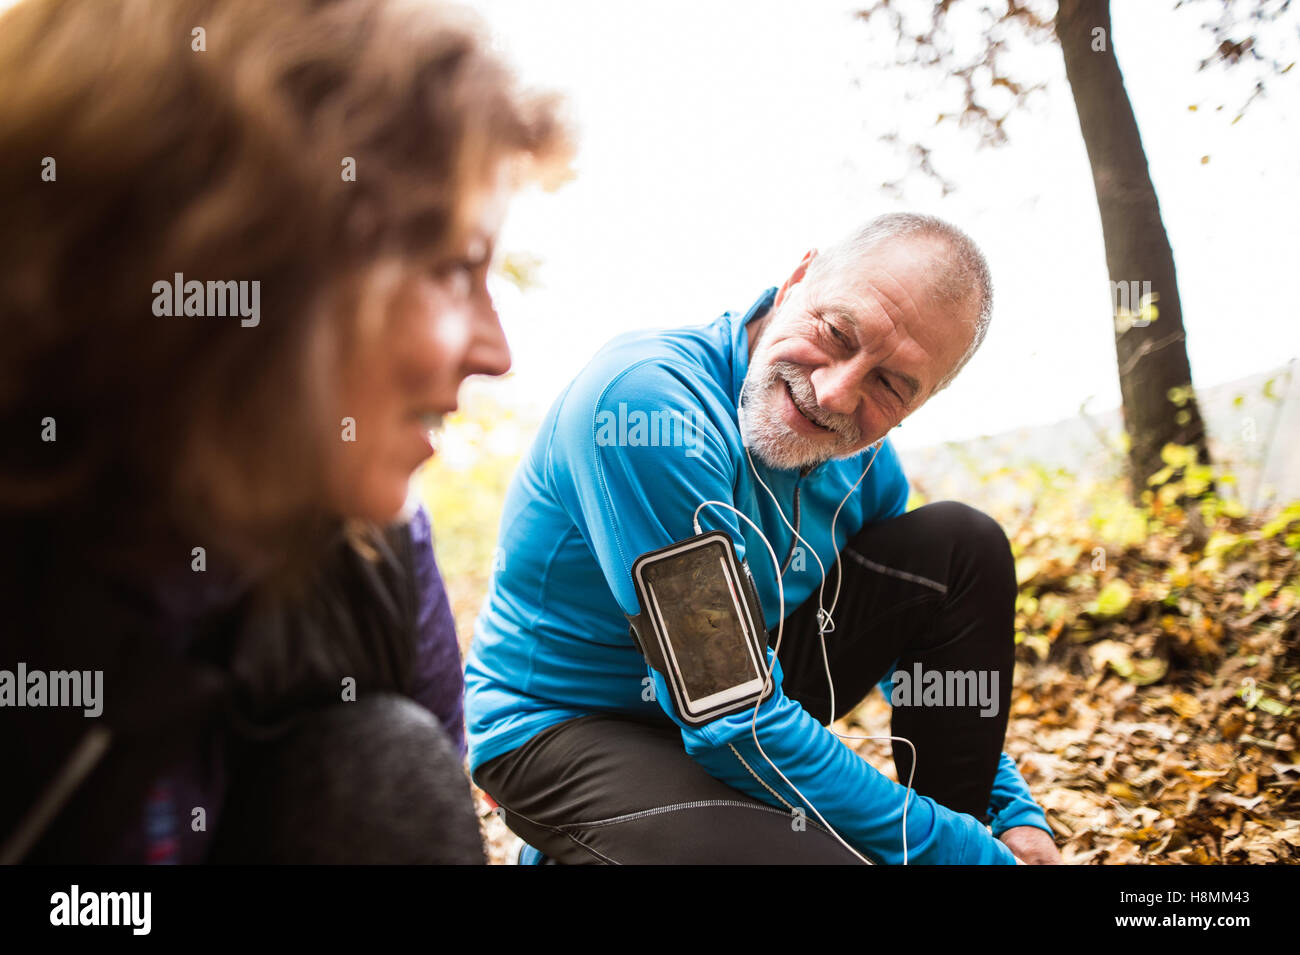 Senior runners in nature, tying shoelaces. Man with smartphone. Stock Photo